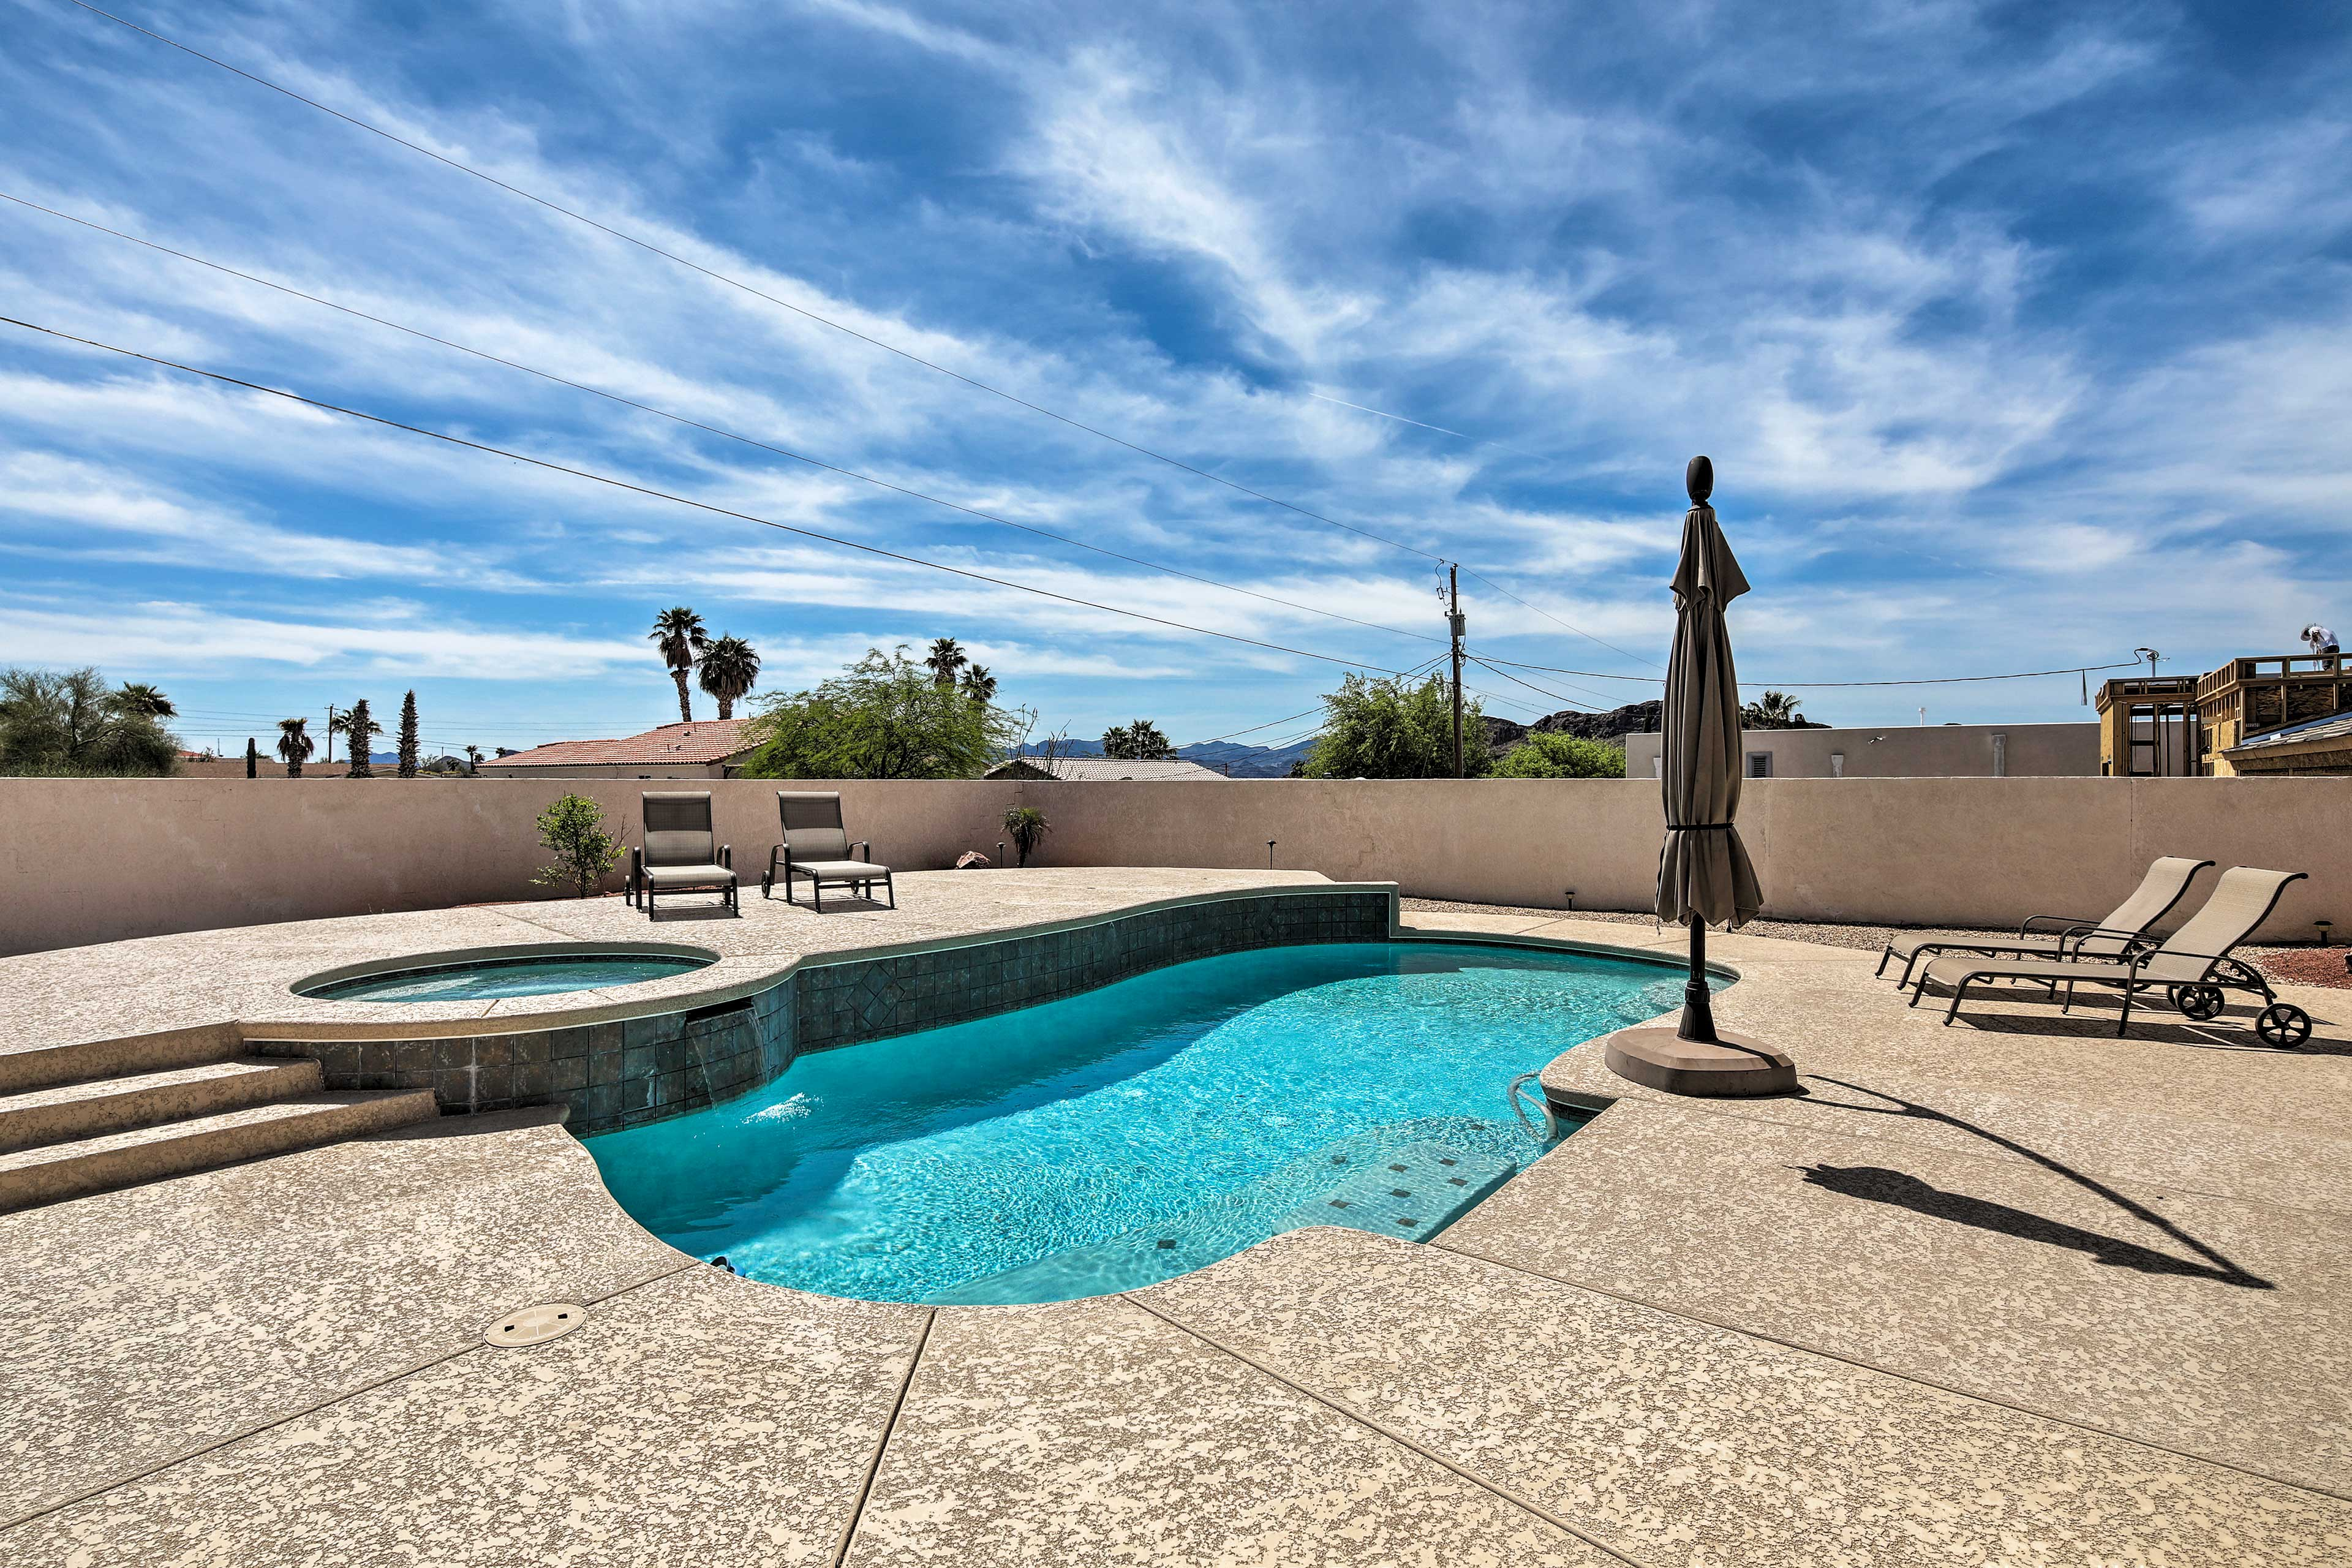 The vacation rental boasts a private pool, hot tub, patio, grill, & more!